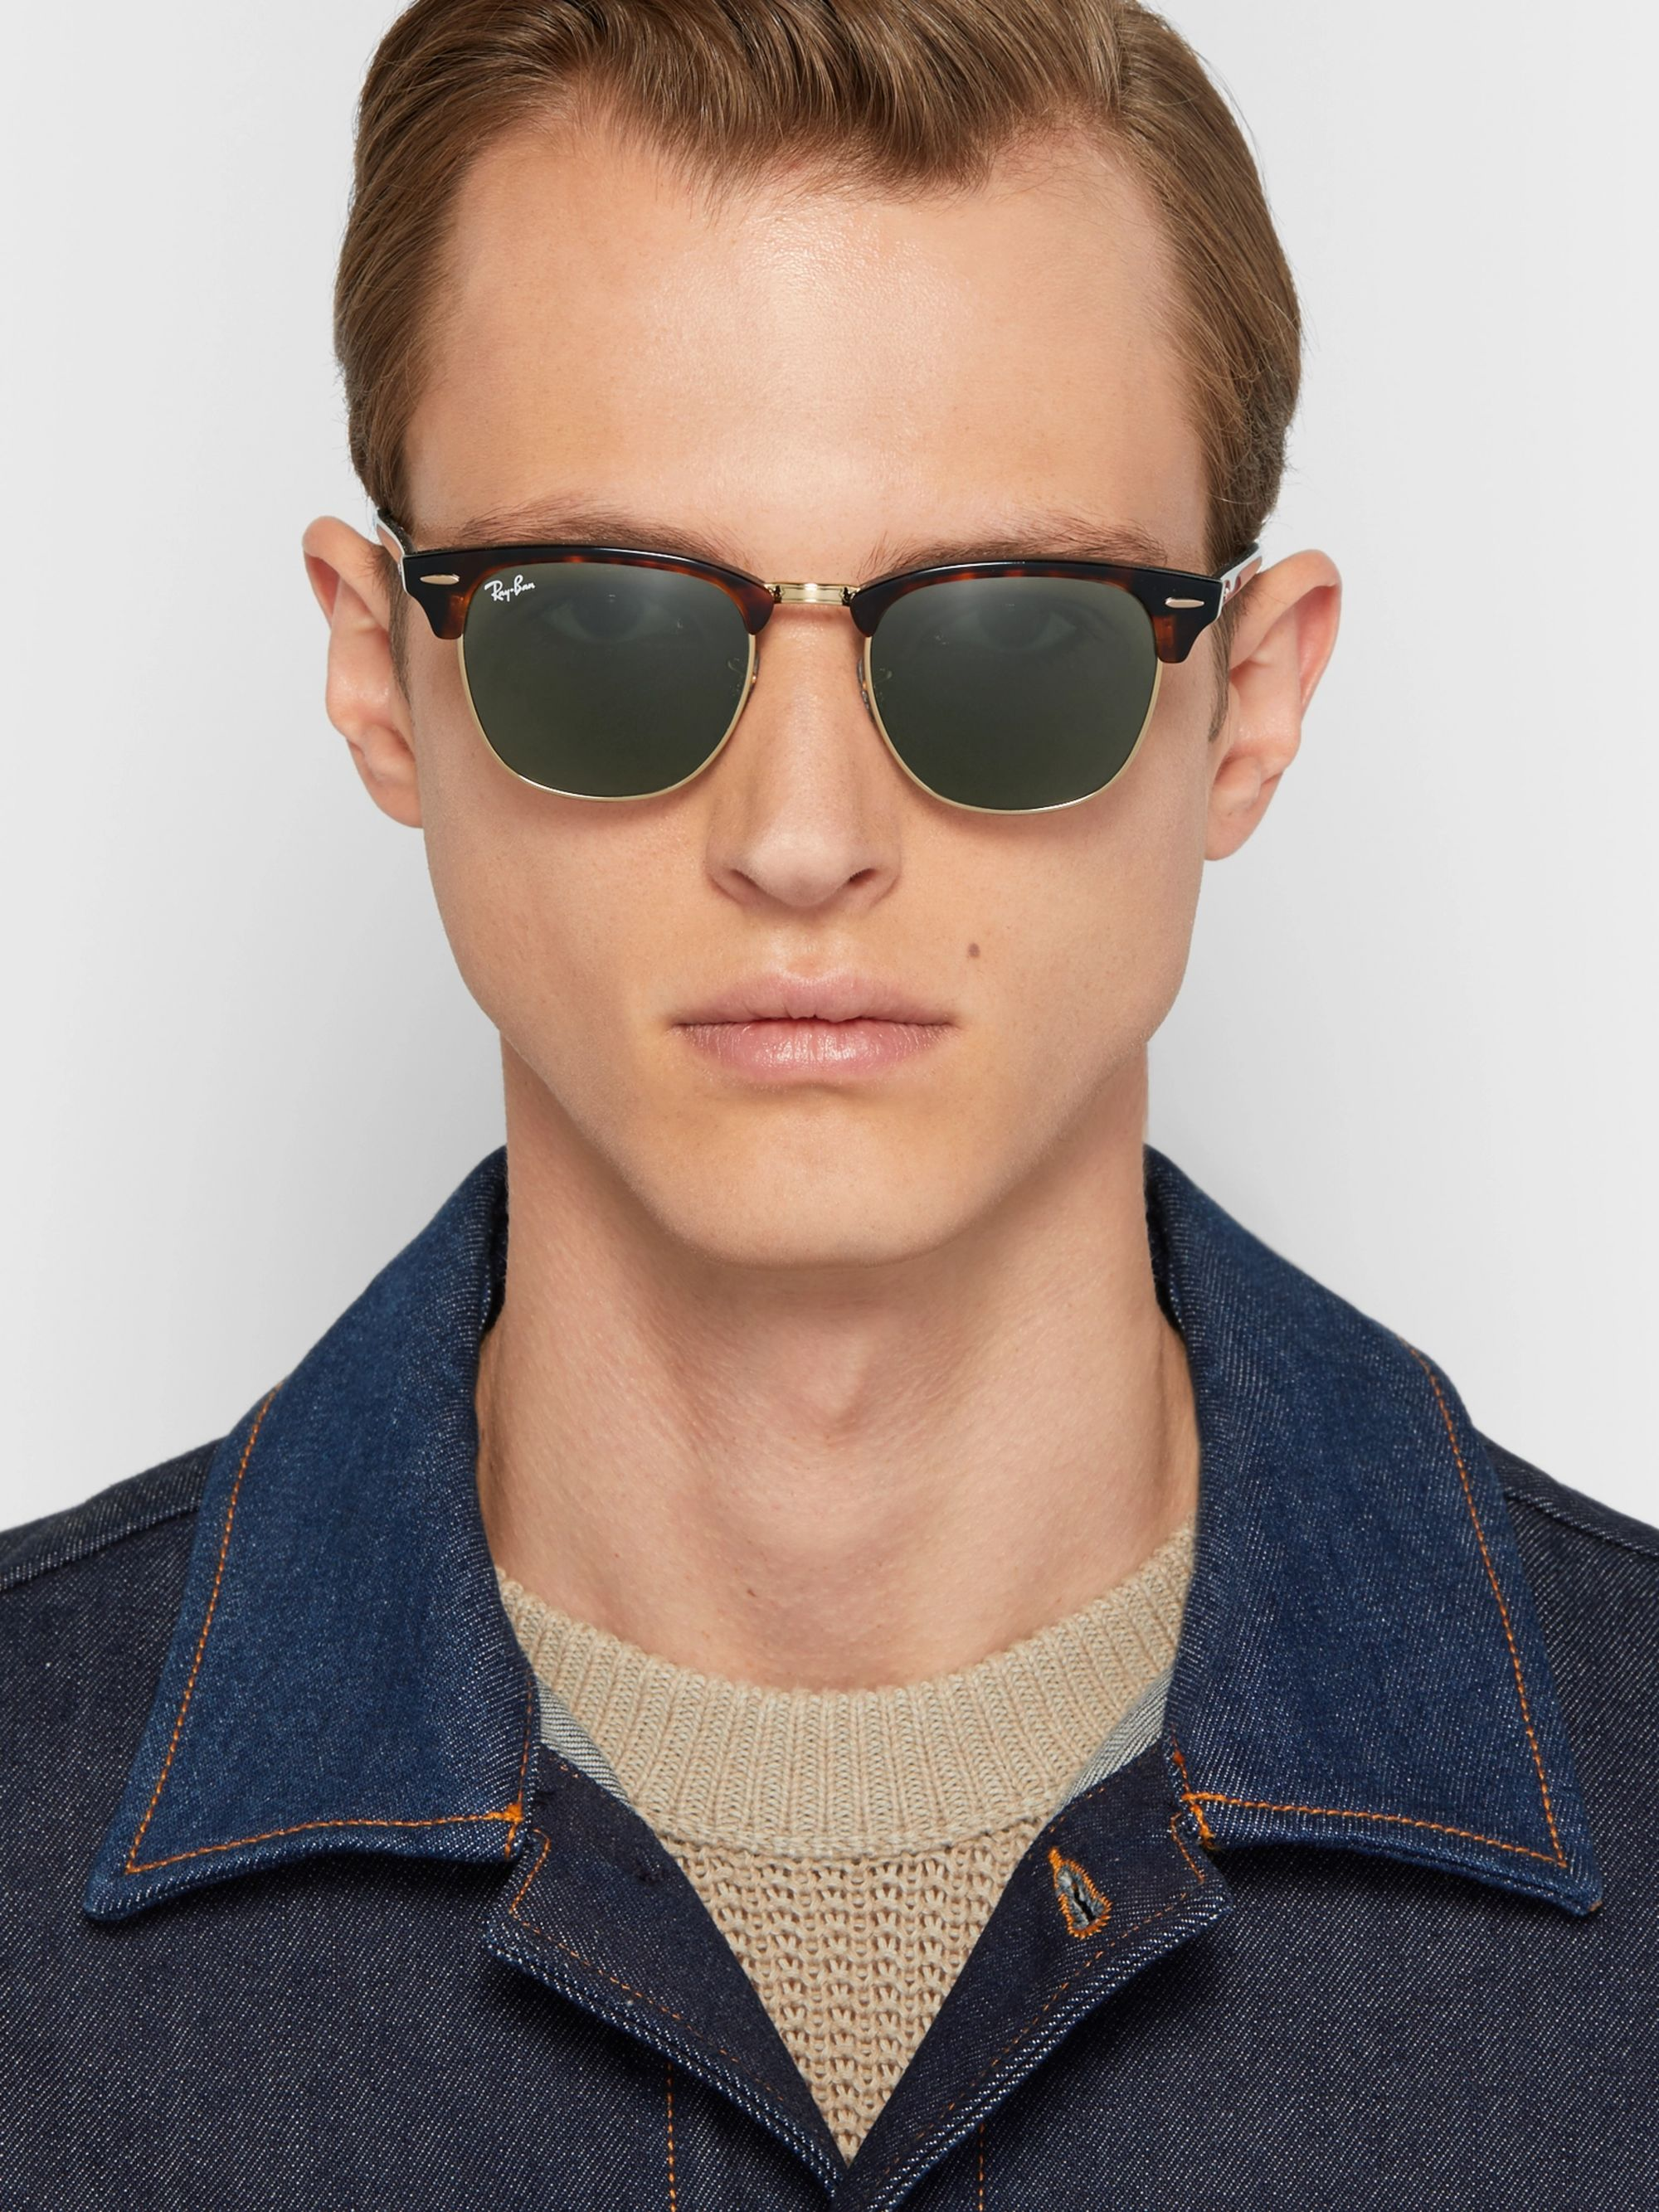 Ray-Ban Clubmaster Acetate and Gold-Tone Sunglasses